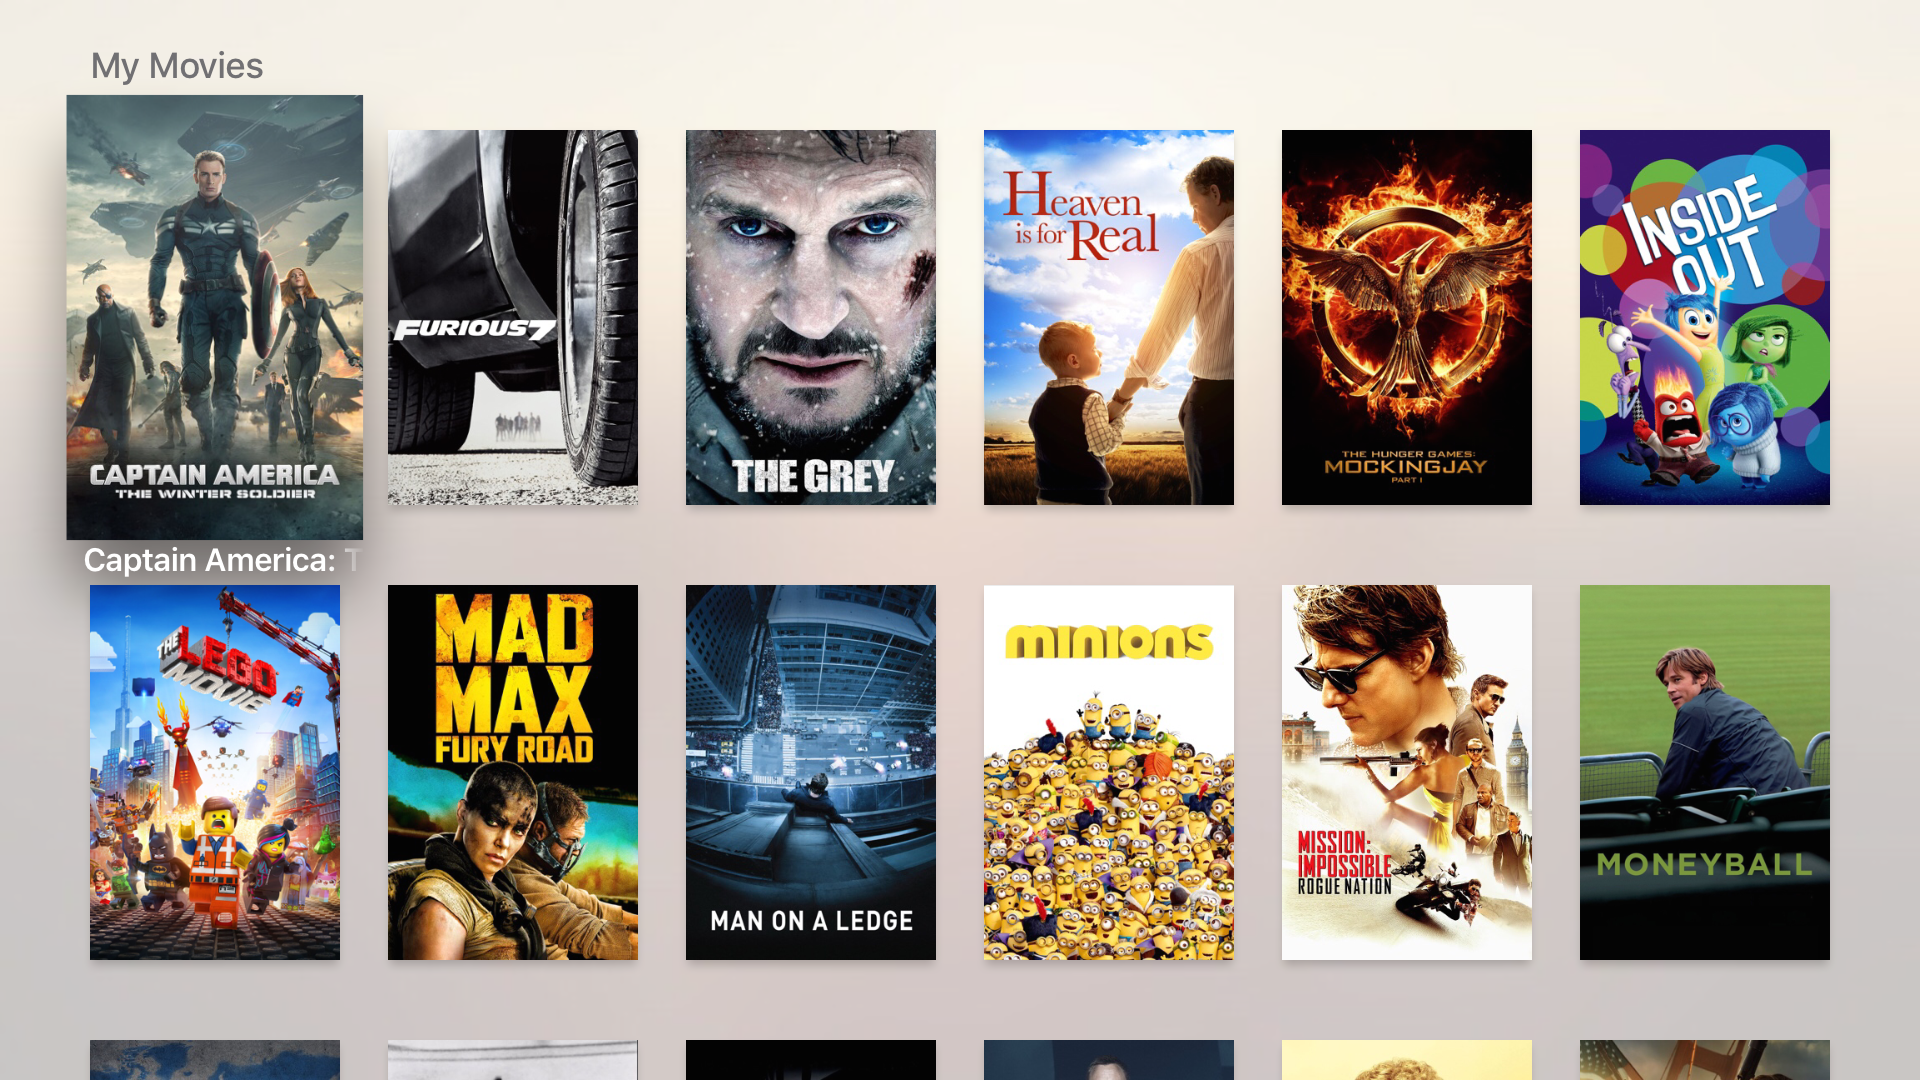 Fire up even more media streaming on the Apple TV with Infuse